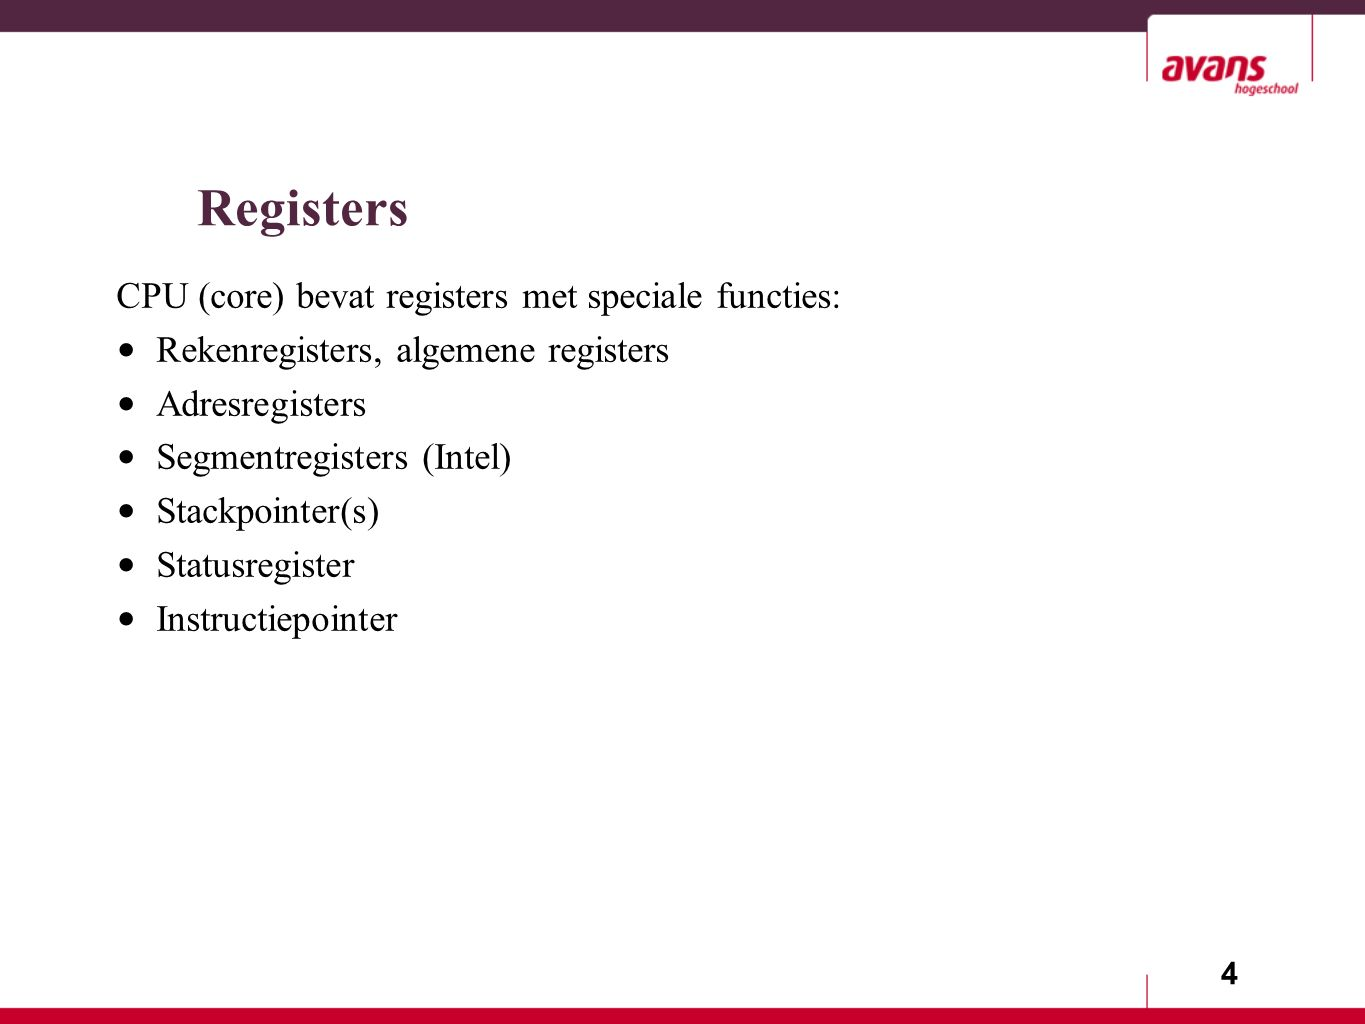 4 Registers CPU (core) bevat registers met speciale functies: Rekenregisters, algemene registers Adresregisters Segmentregisters (Intel) Stackpointer(s) Statusregister Instructiepointer